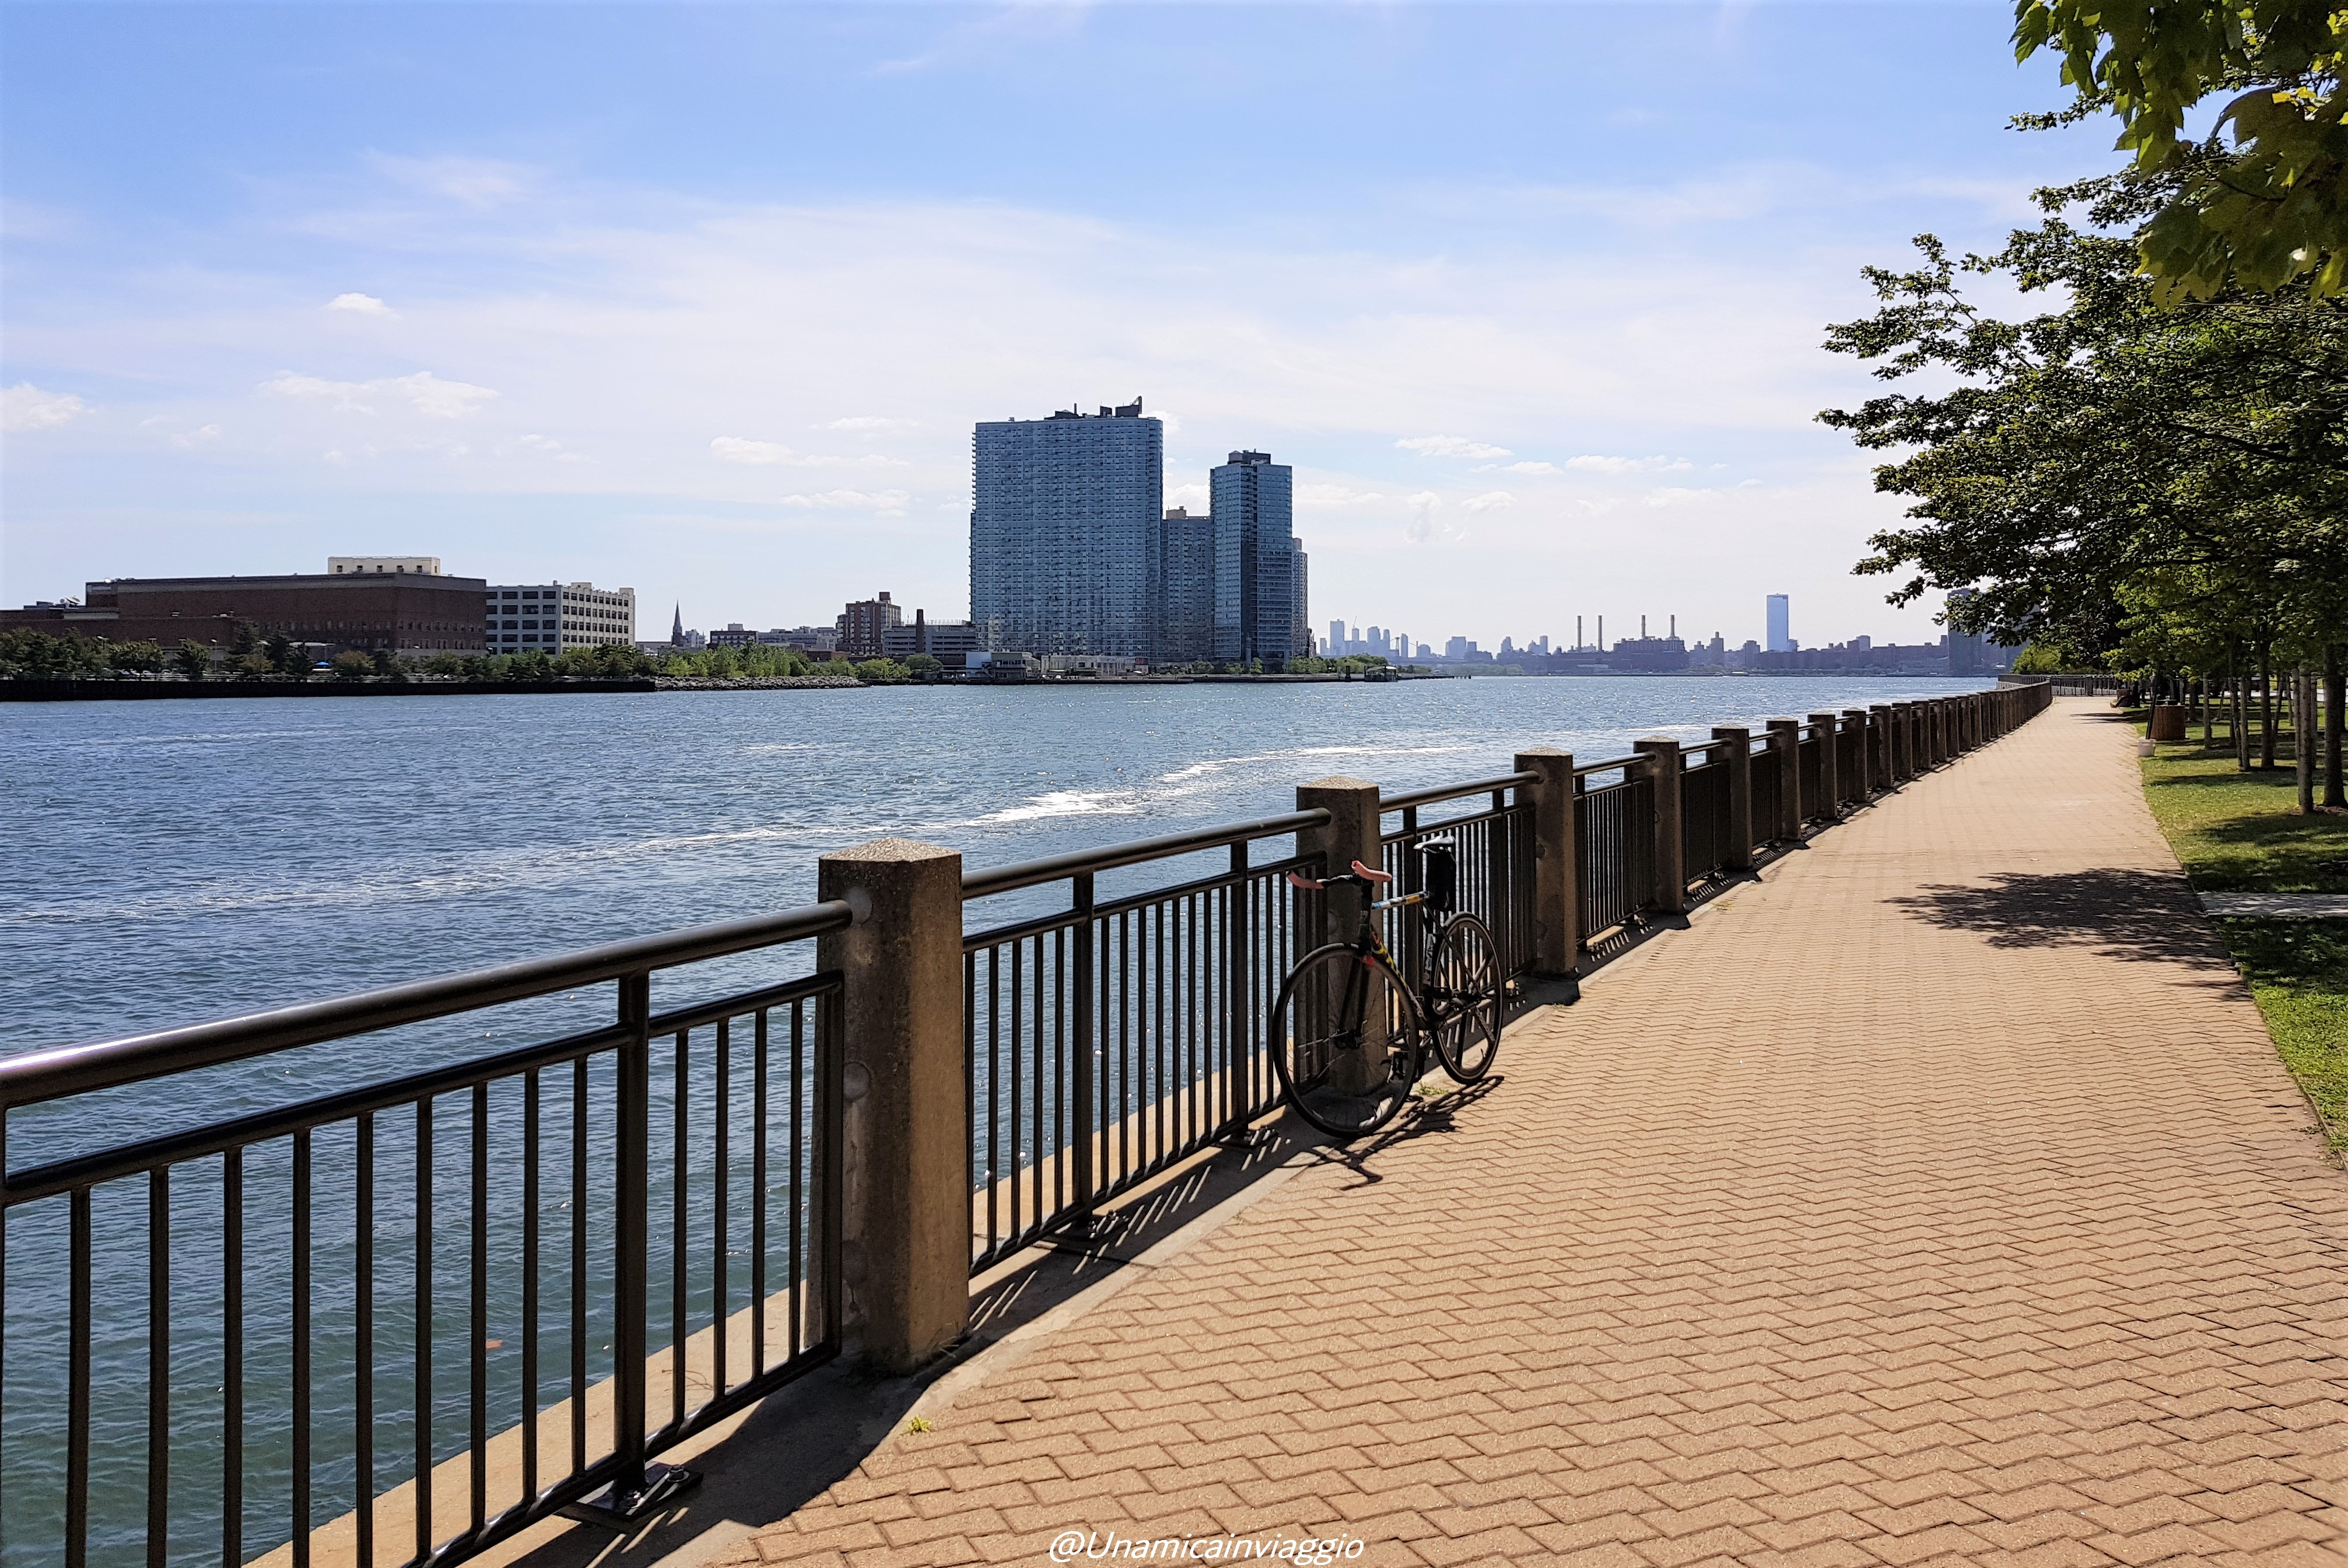 Cosa vedere a Roosevelt Island - skyline del Queens